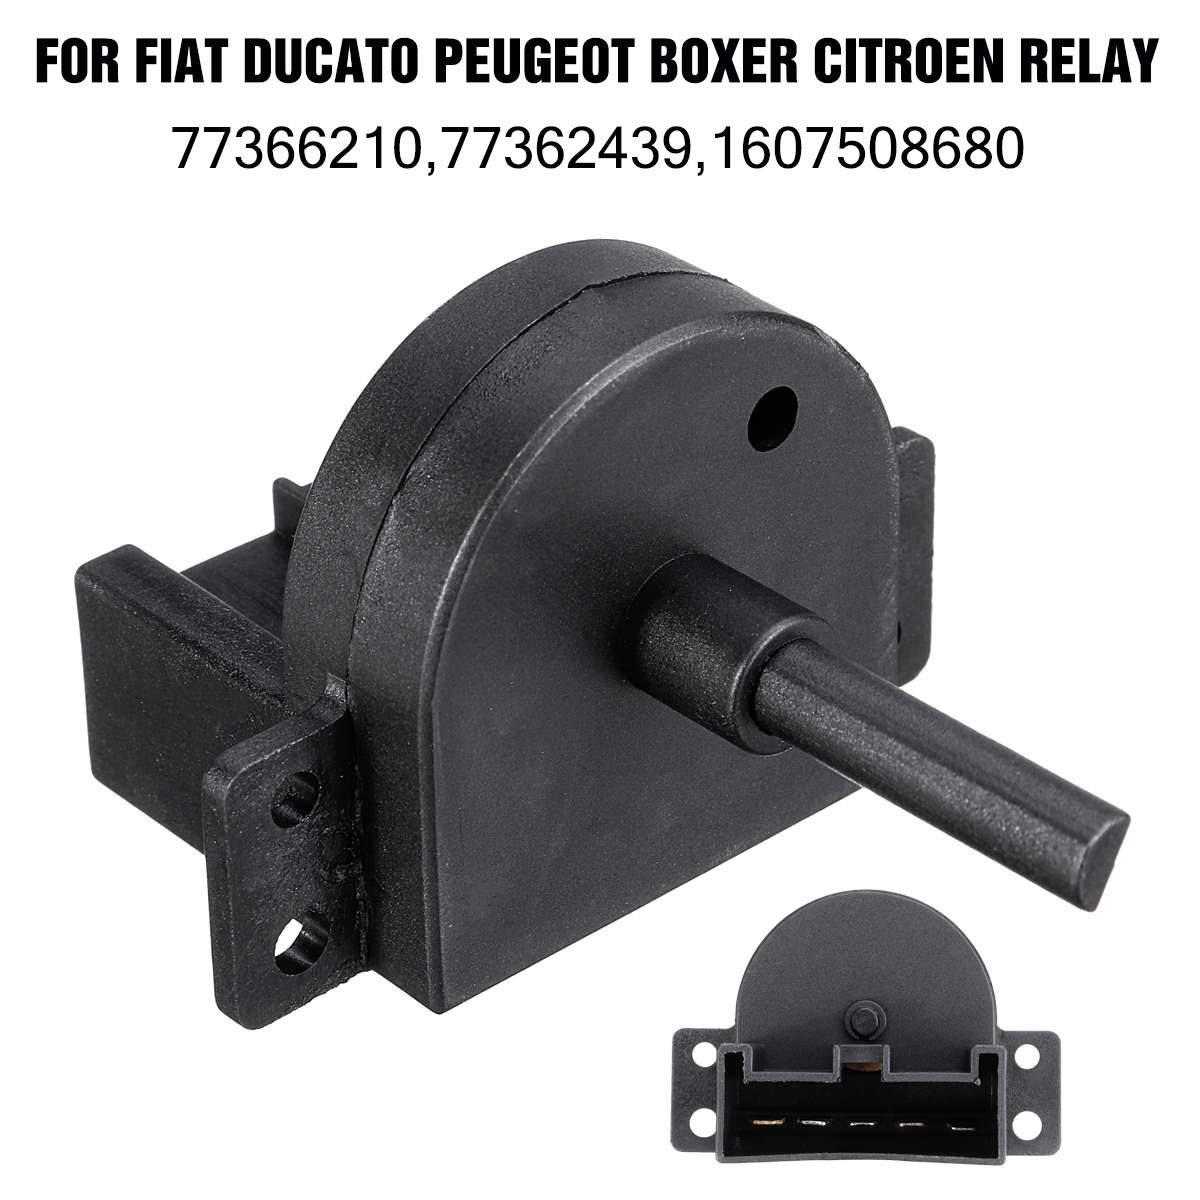 Car Heater Blower Fan Switch 77362439 77366210 77367027 For Fiat Ducato For Peugeot Boxer For Citroen Relay/Jumper 2006-